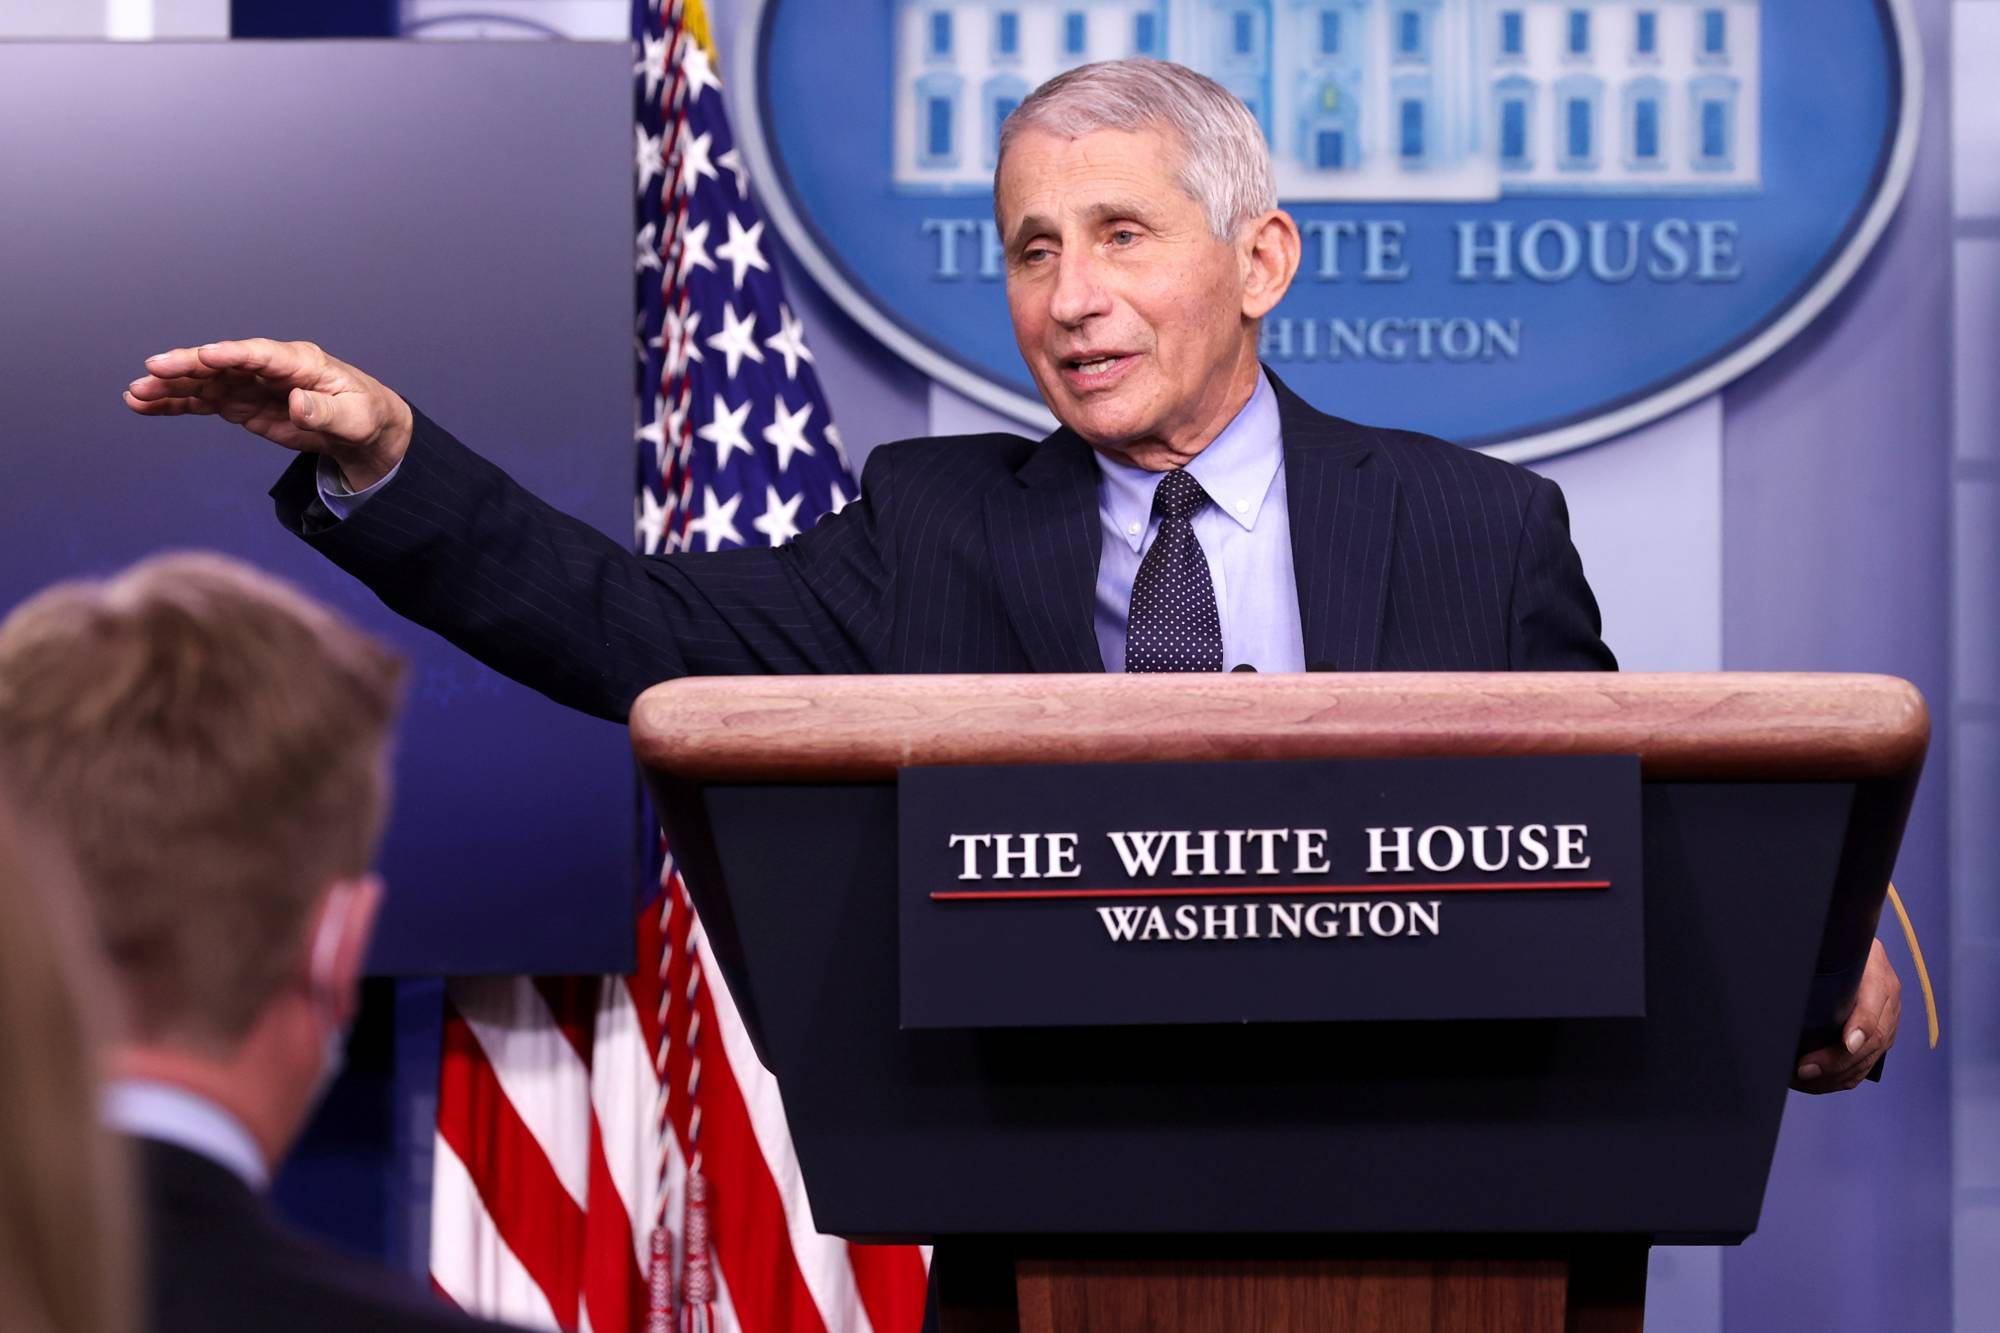 National Institute of Allergy and Infectious Diseases Director Anthony Fauci addresses a news briefing at the White House on Thursday.  | REUTERS